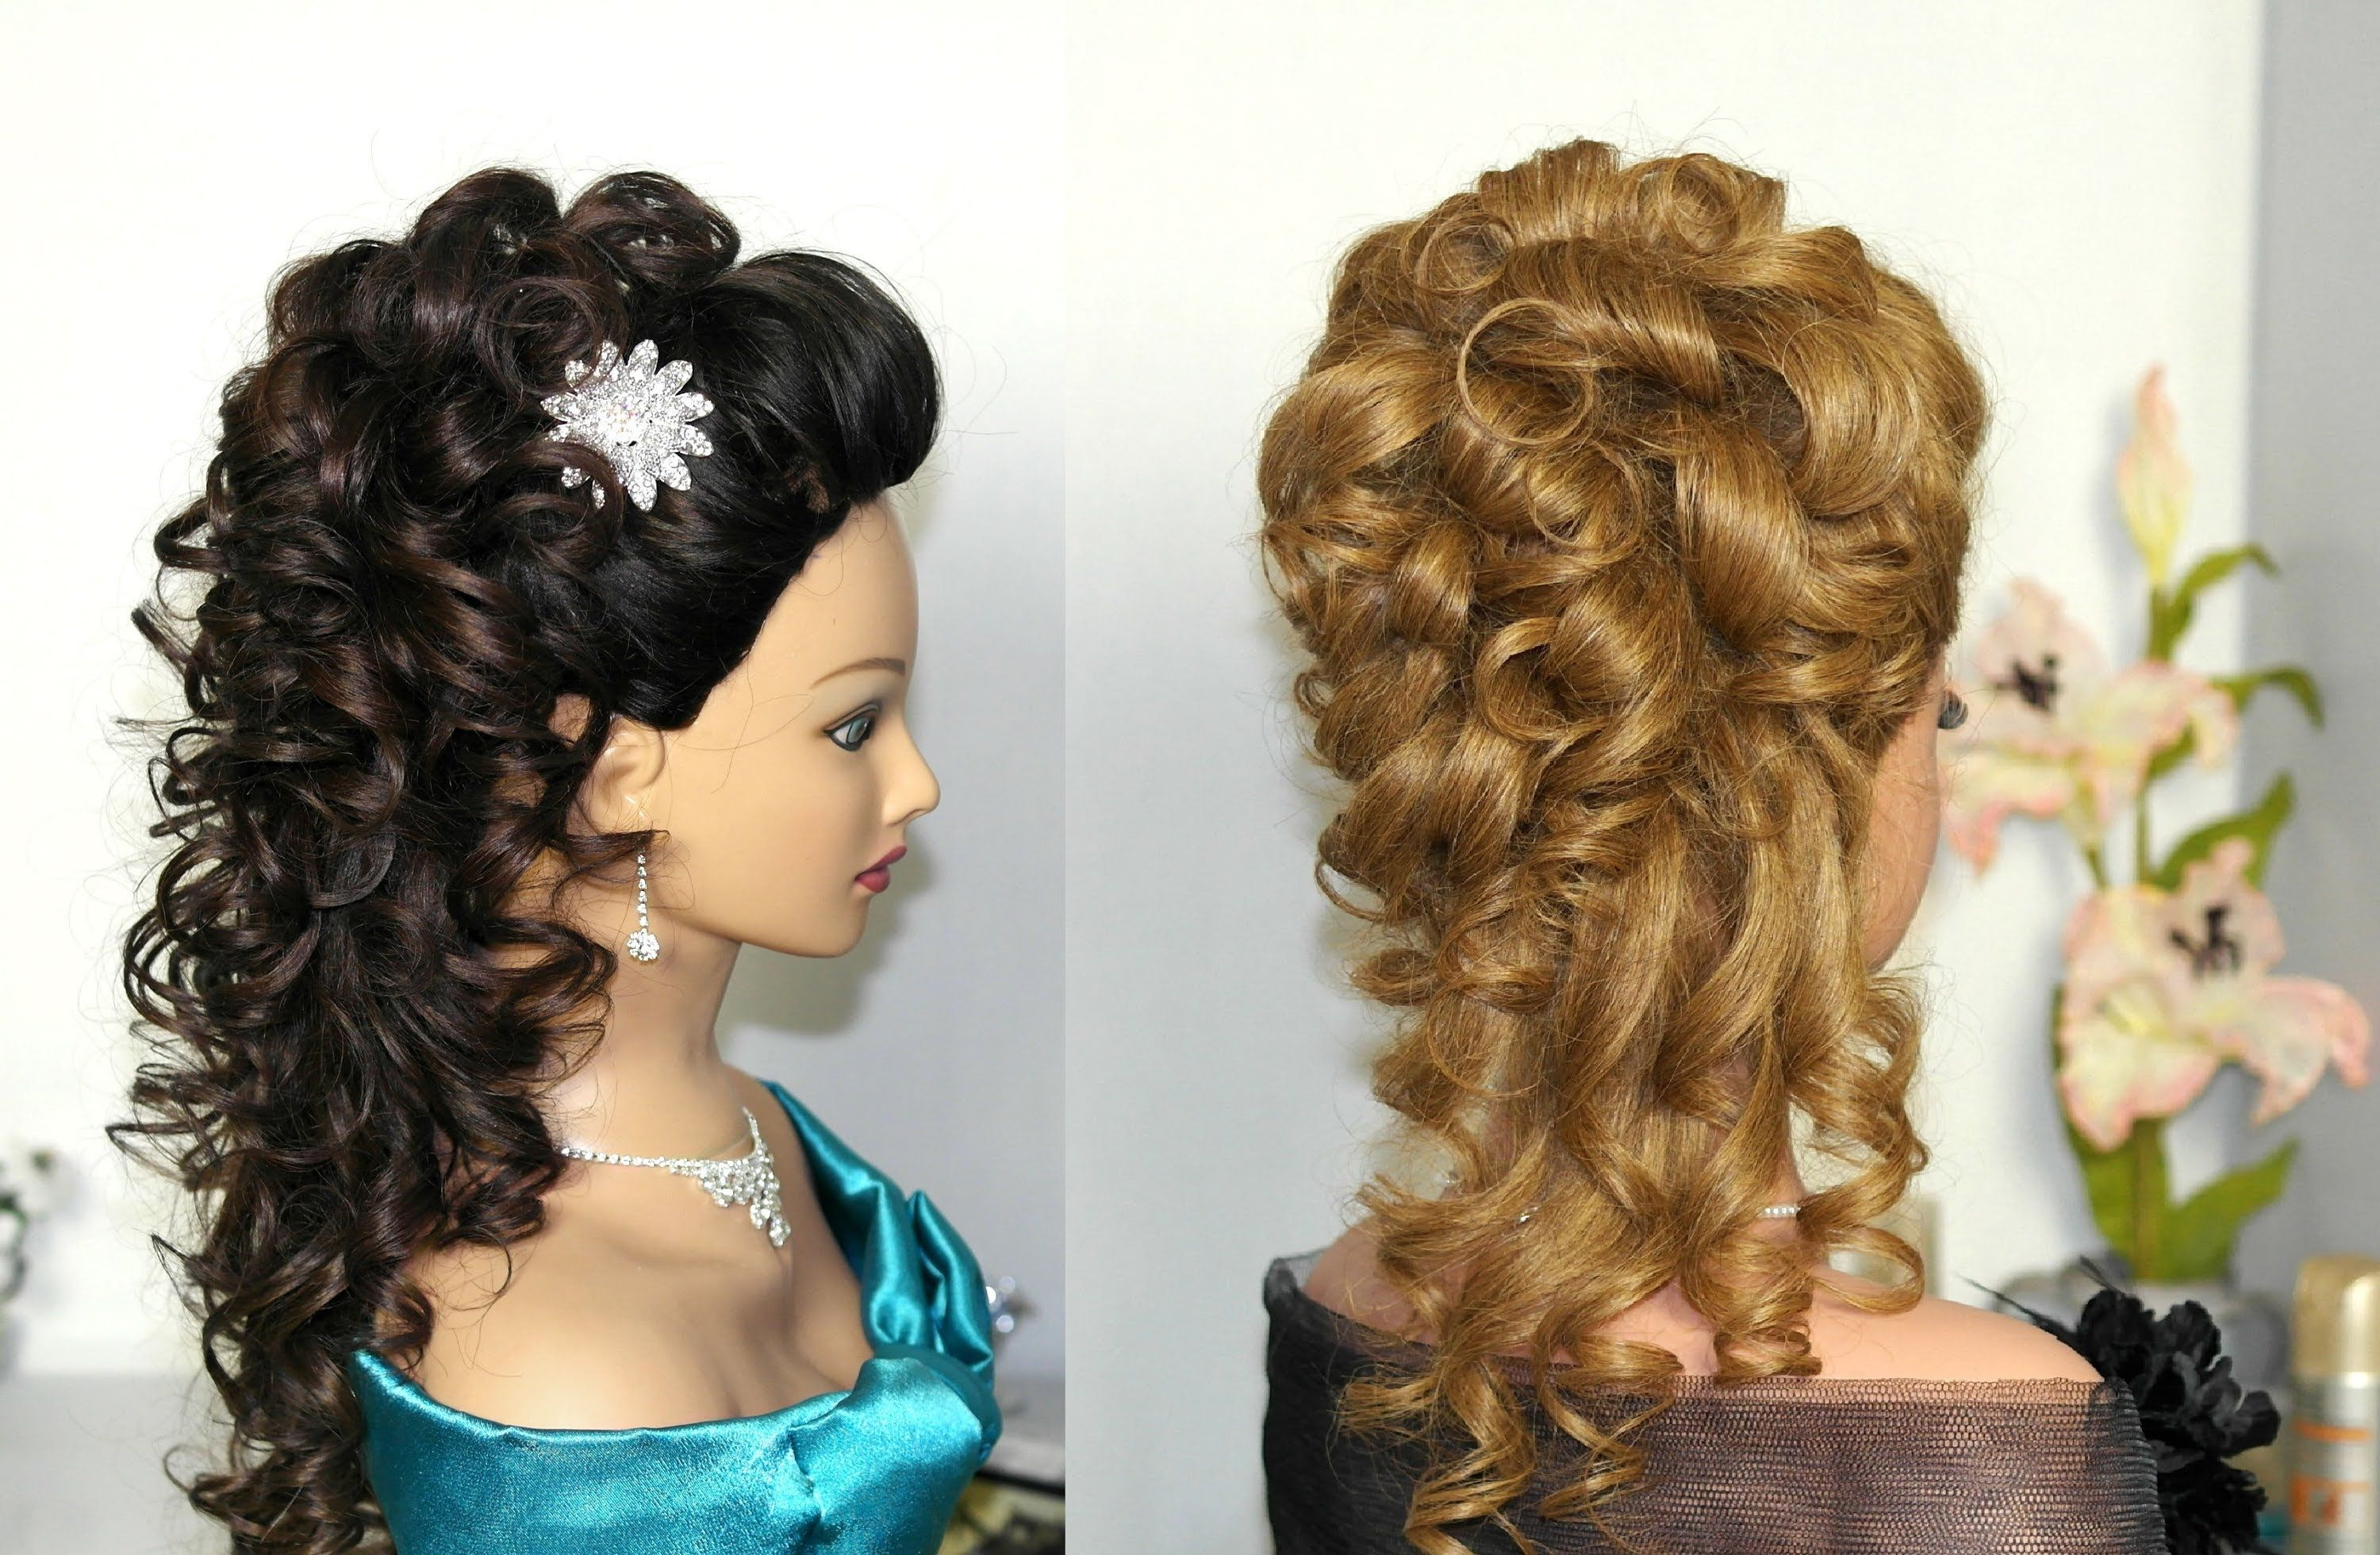 Bridal, Prom Hairstyle For Long Hair. Curly Hairstyles